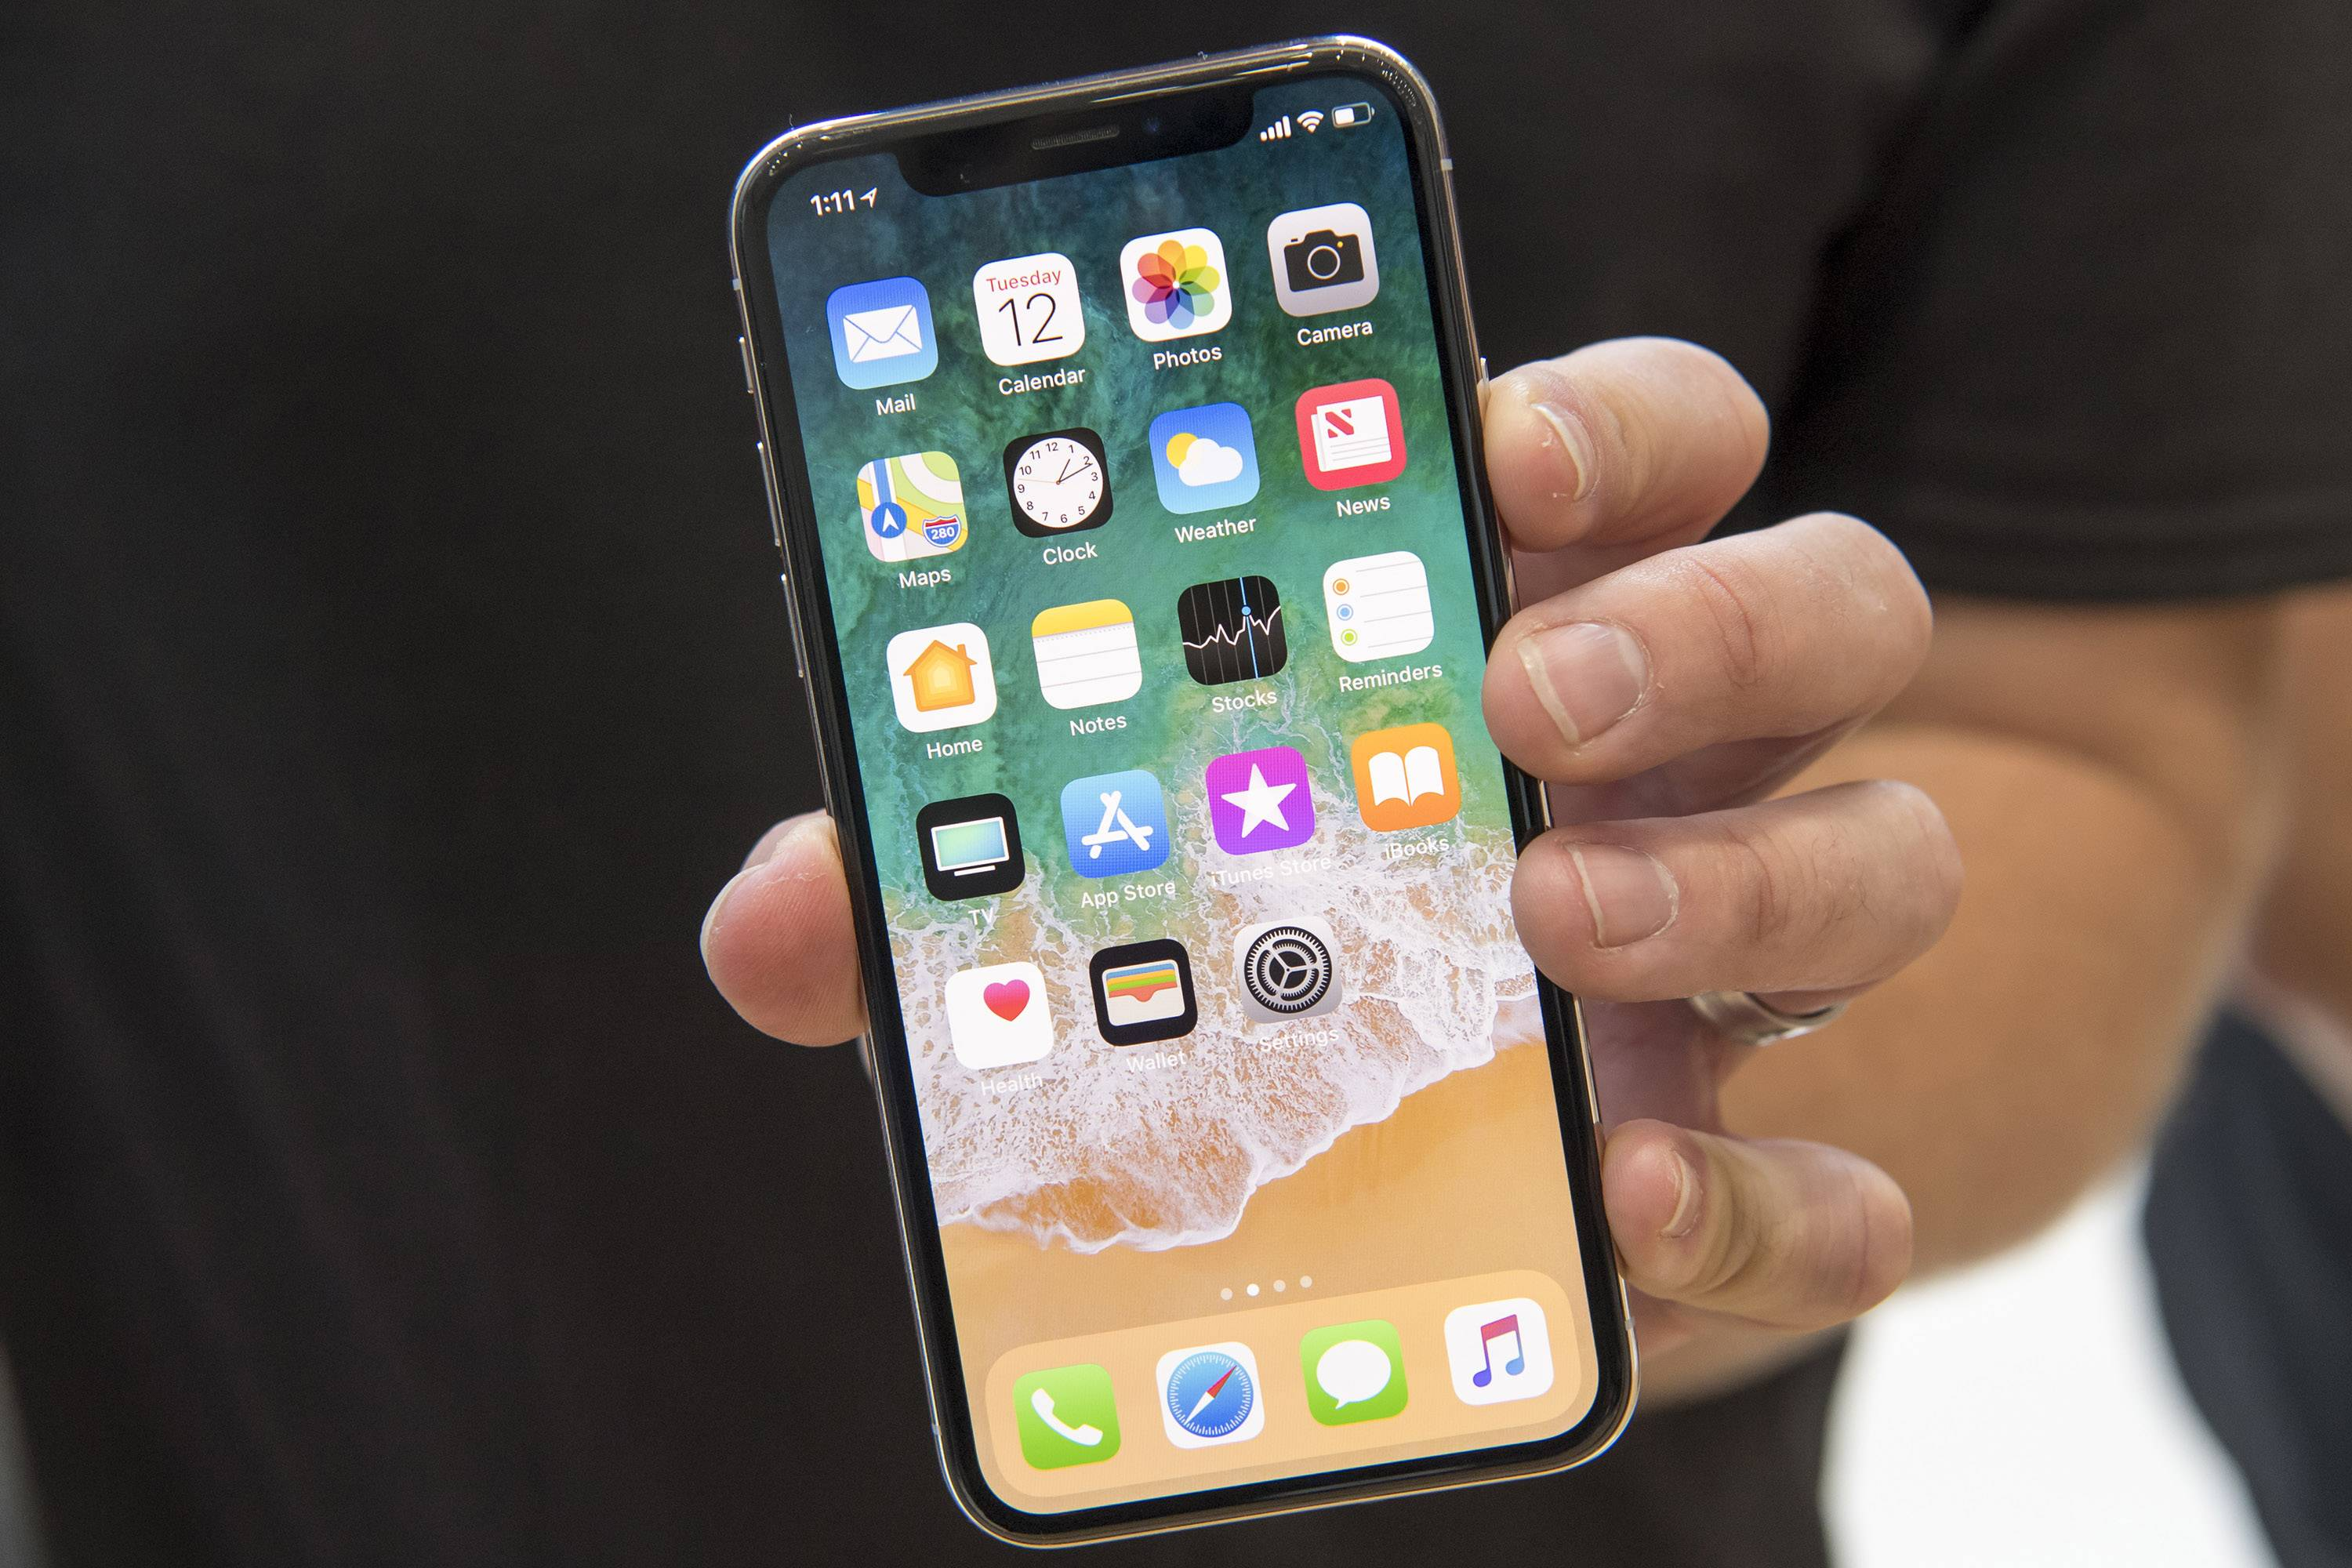 The iPhone X, which comes a decade after the original model, is Apple's first major redesign since 2014 and represents a significant upgrade to the iPhone 7 line.